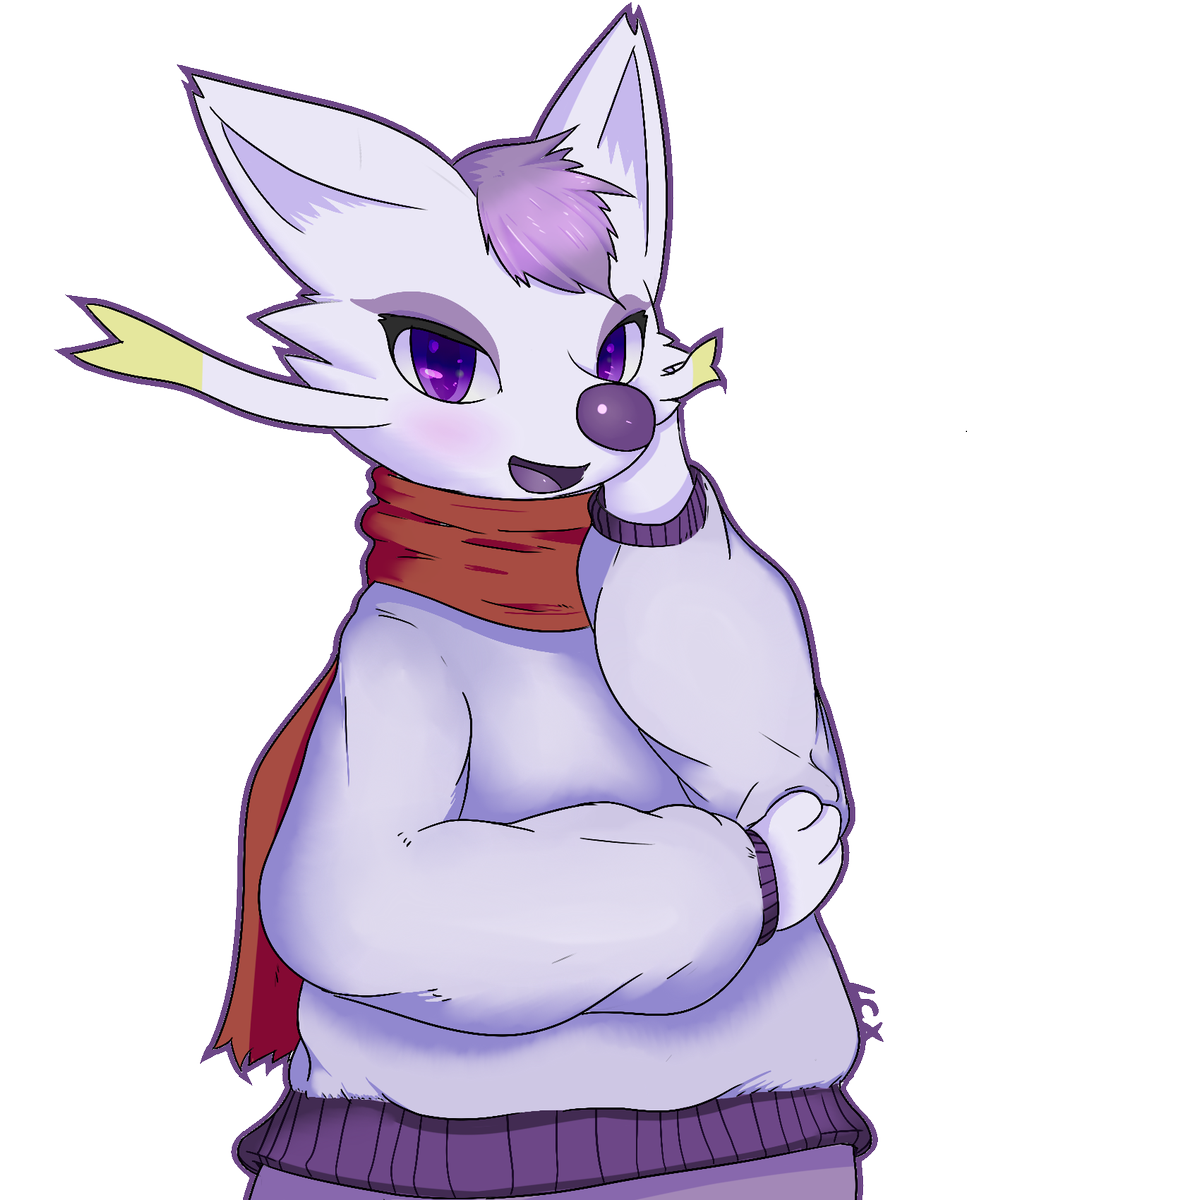 Luca On Twitter Art From Last Night Here S My Mienshao Sona But Now I Made Em All Pretty And Stuff I Think